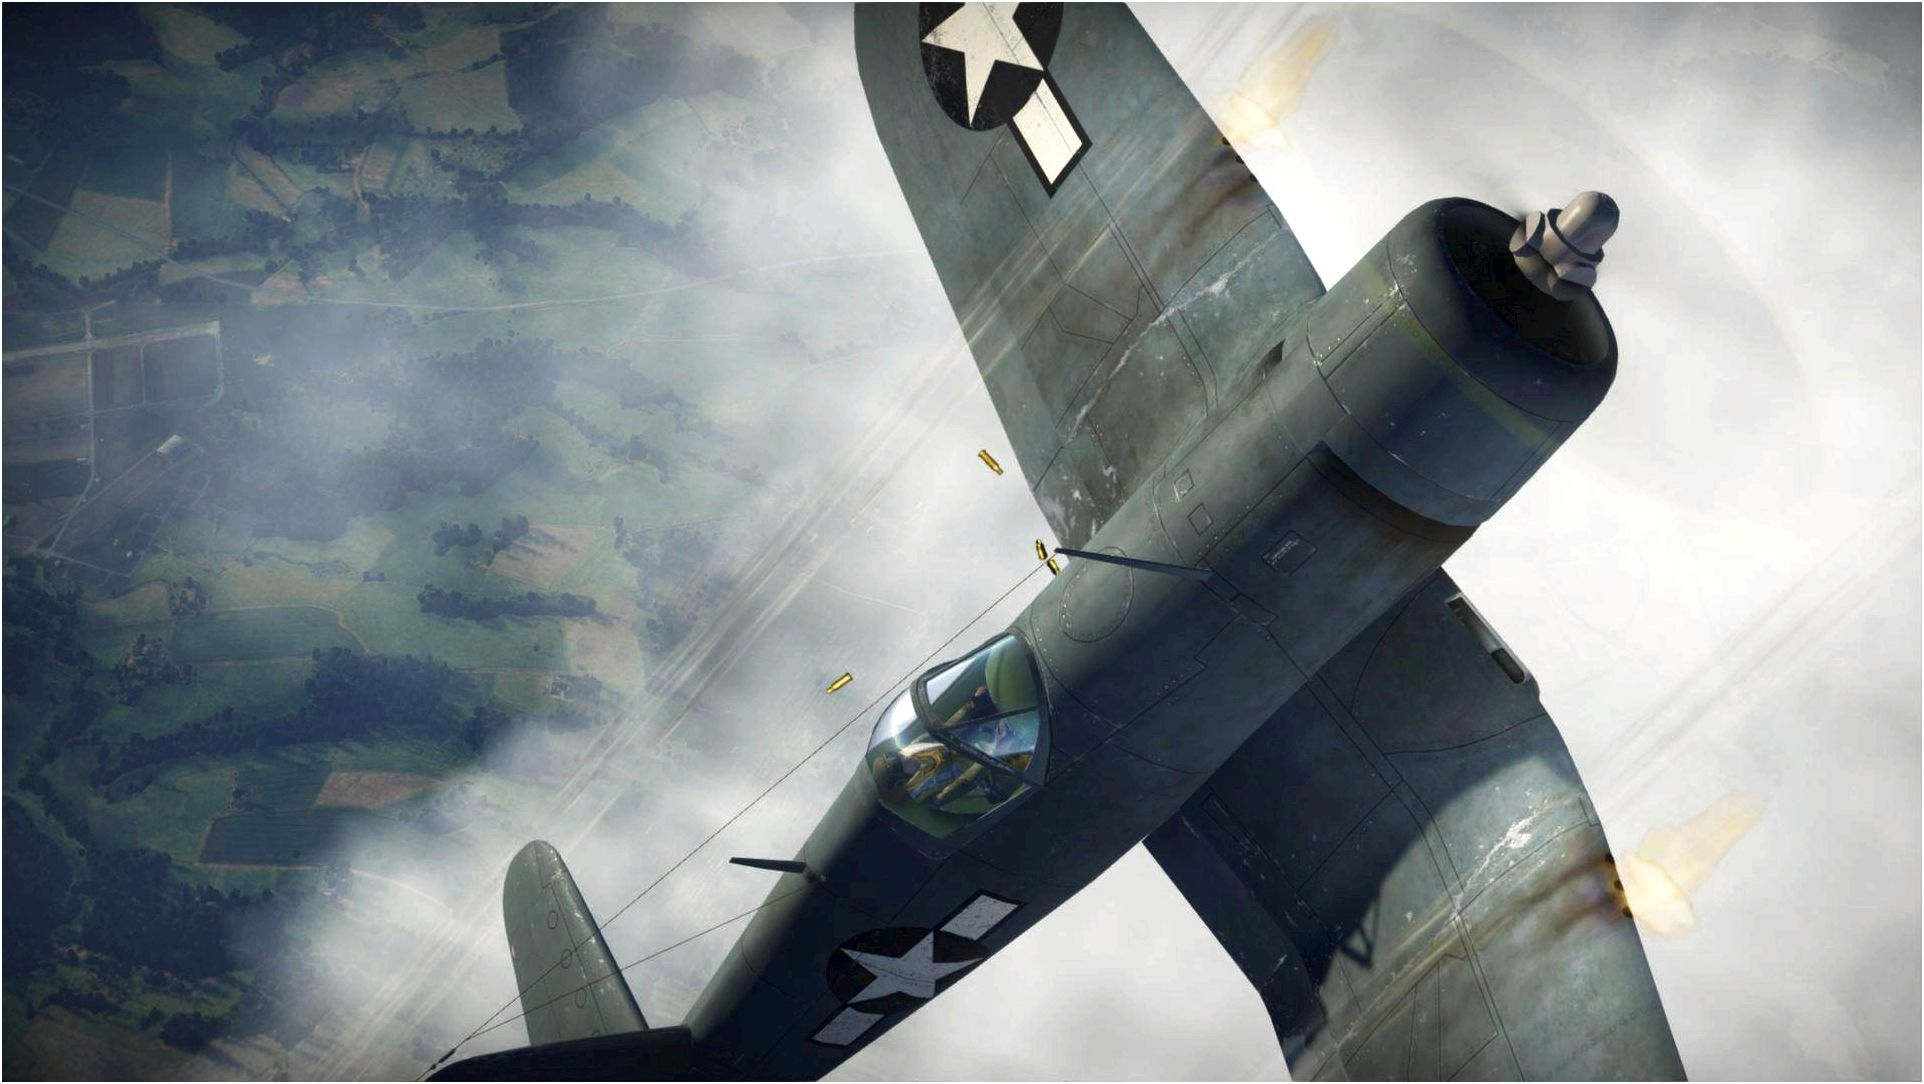 War thunder on steam are able